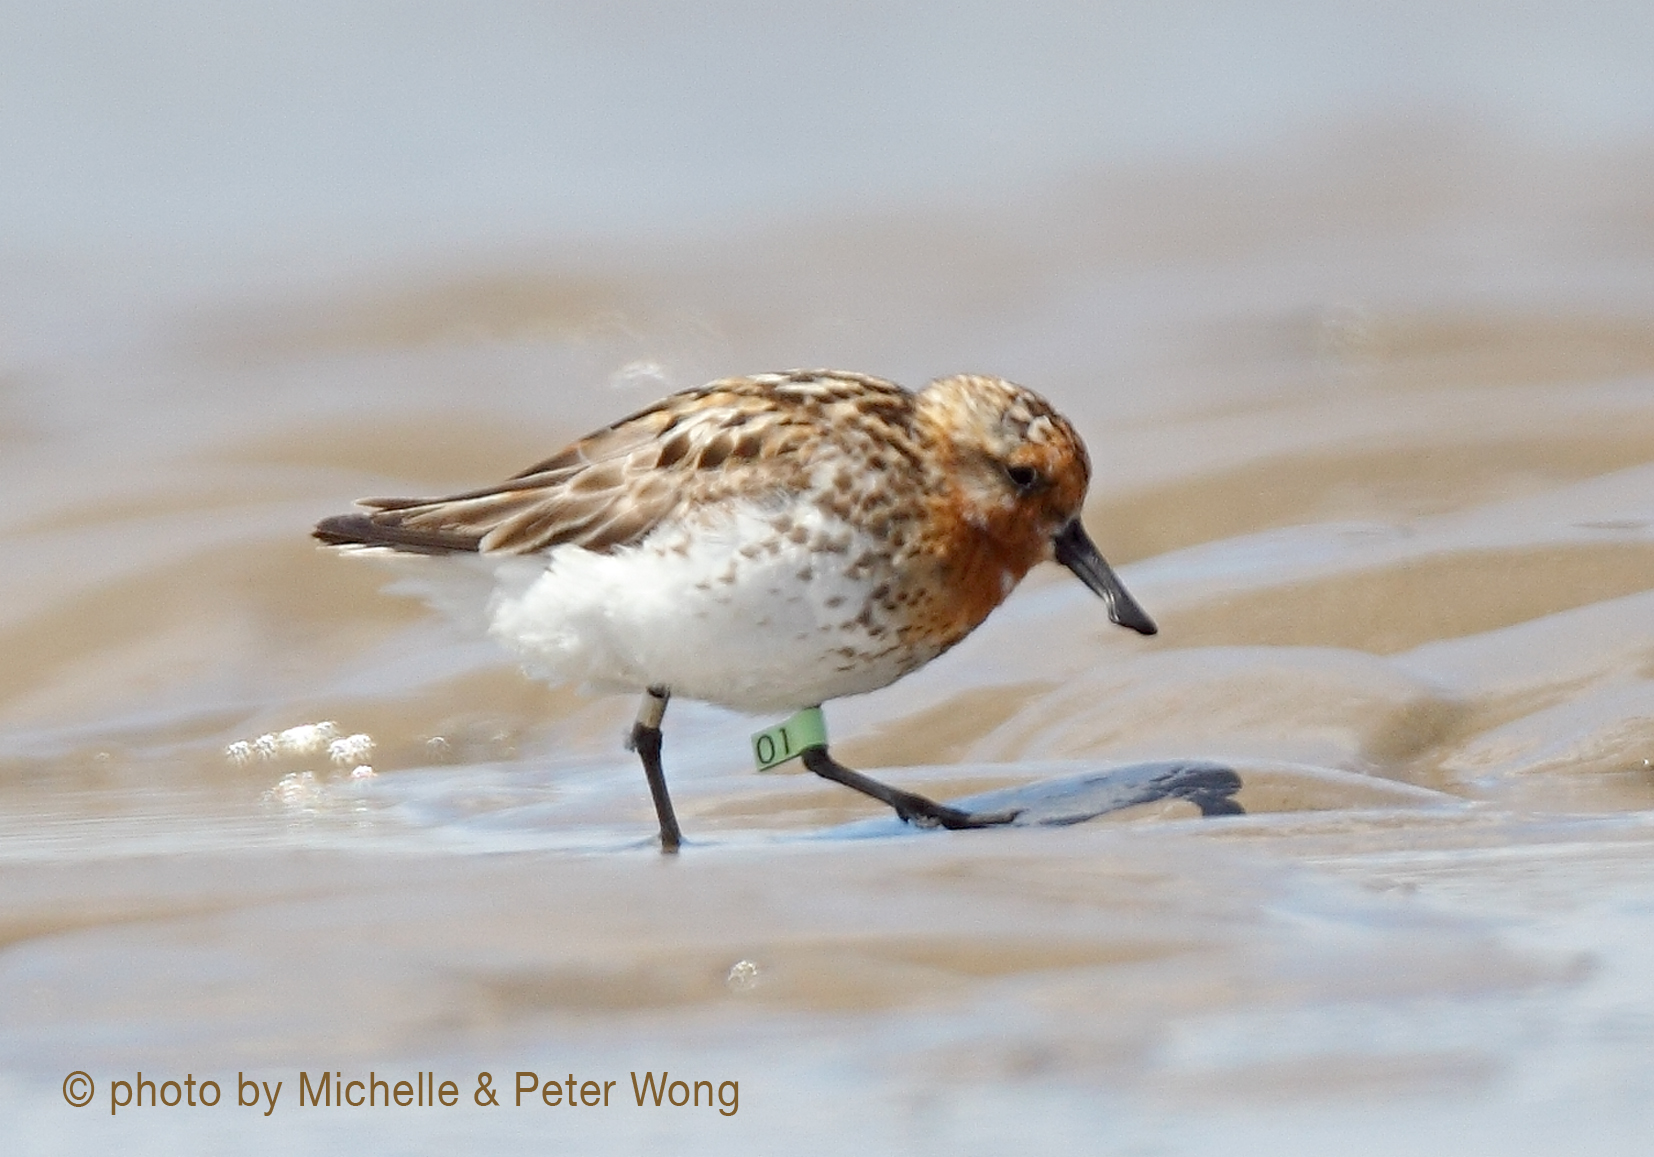 Rare sighting of marked spoon-billed sandpiper on migration